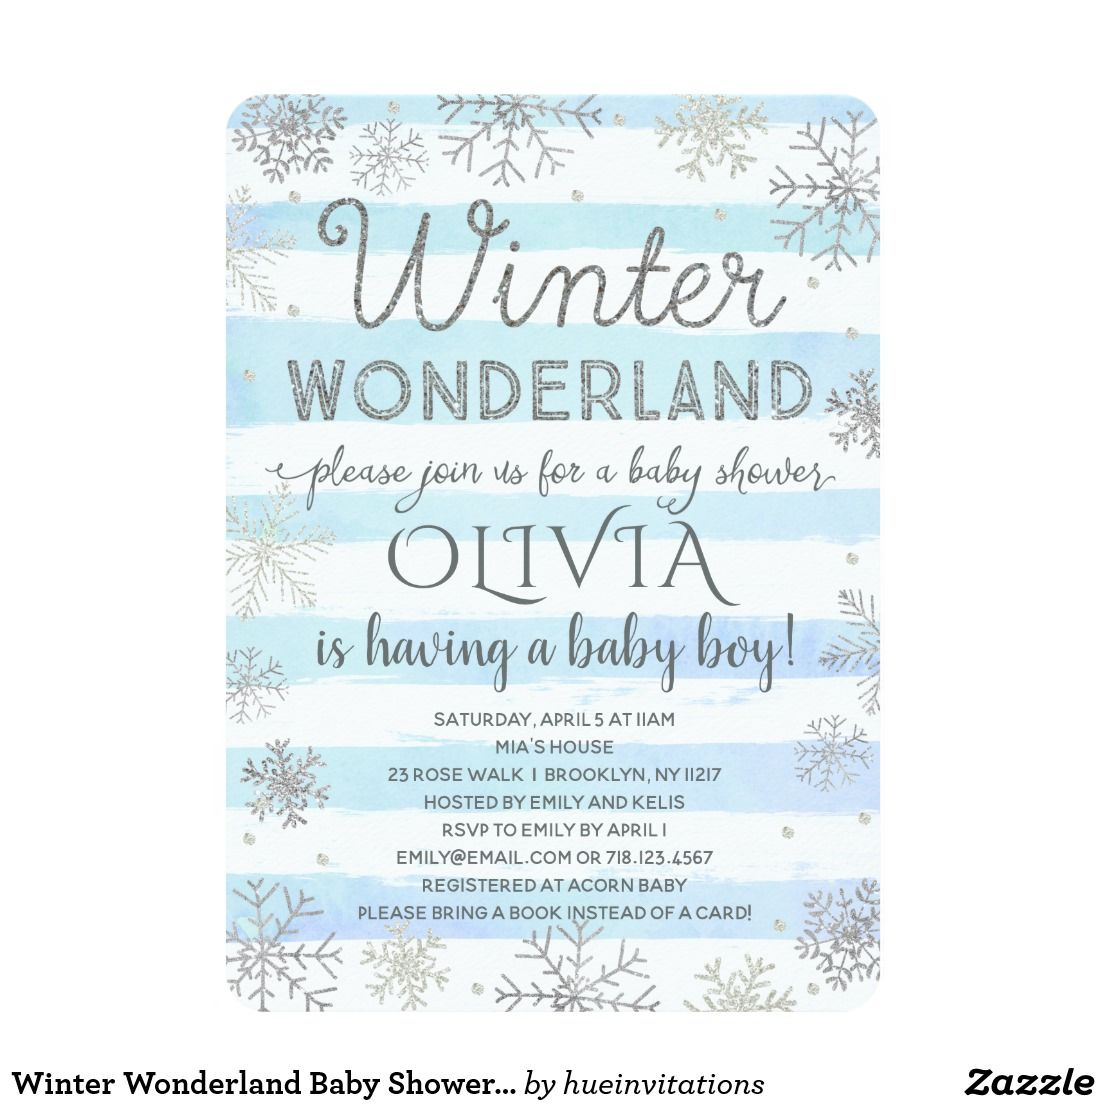 Winter Wonderland Baby Shower Invitation Boy Blue Winter wonderland ...